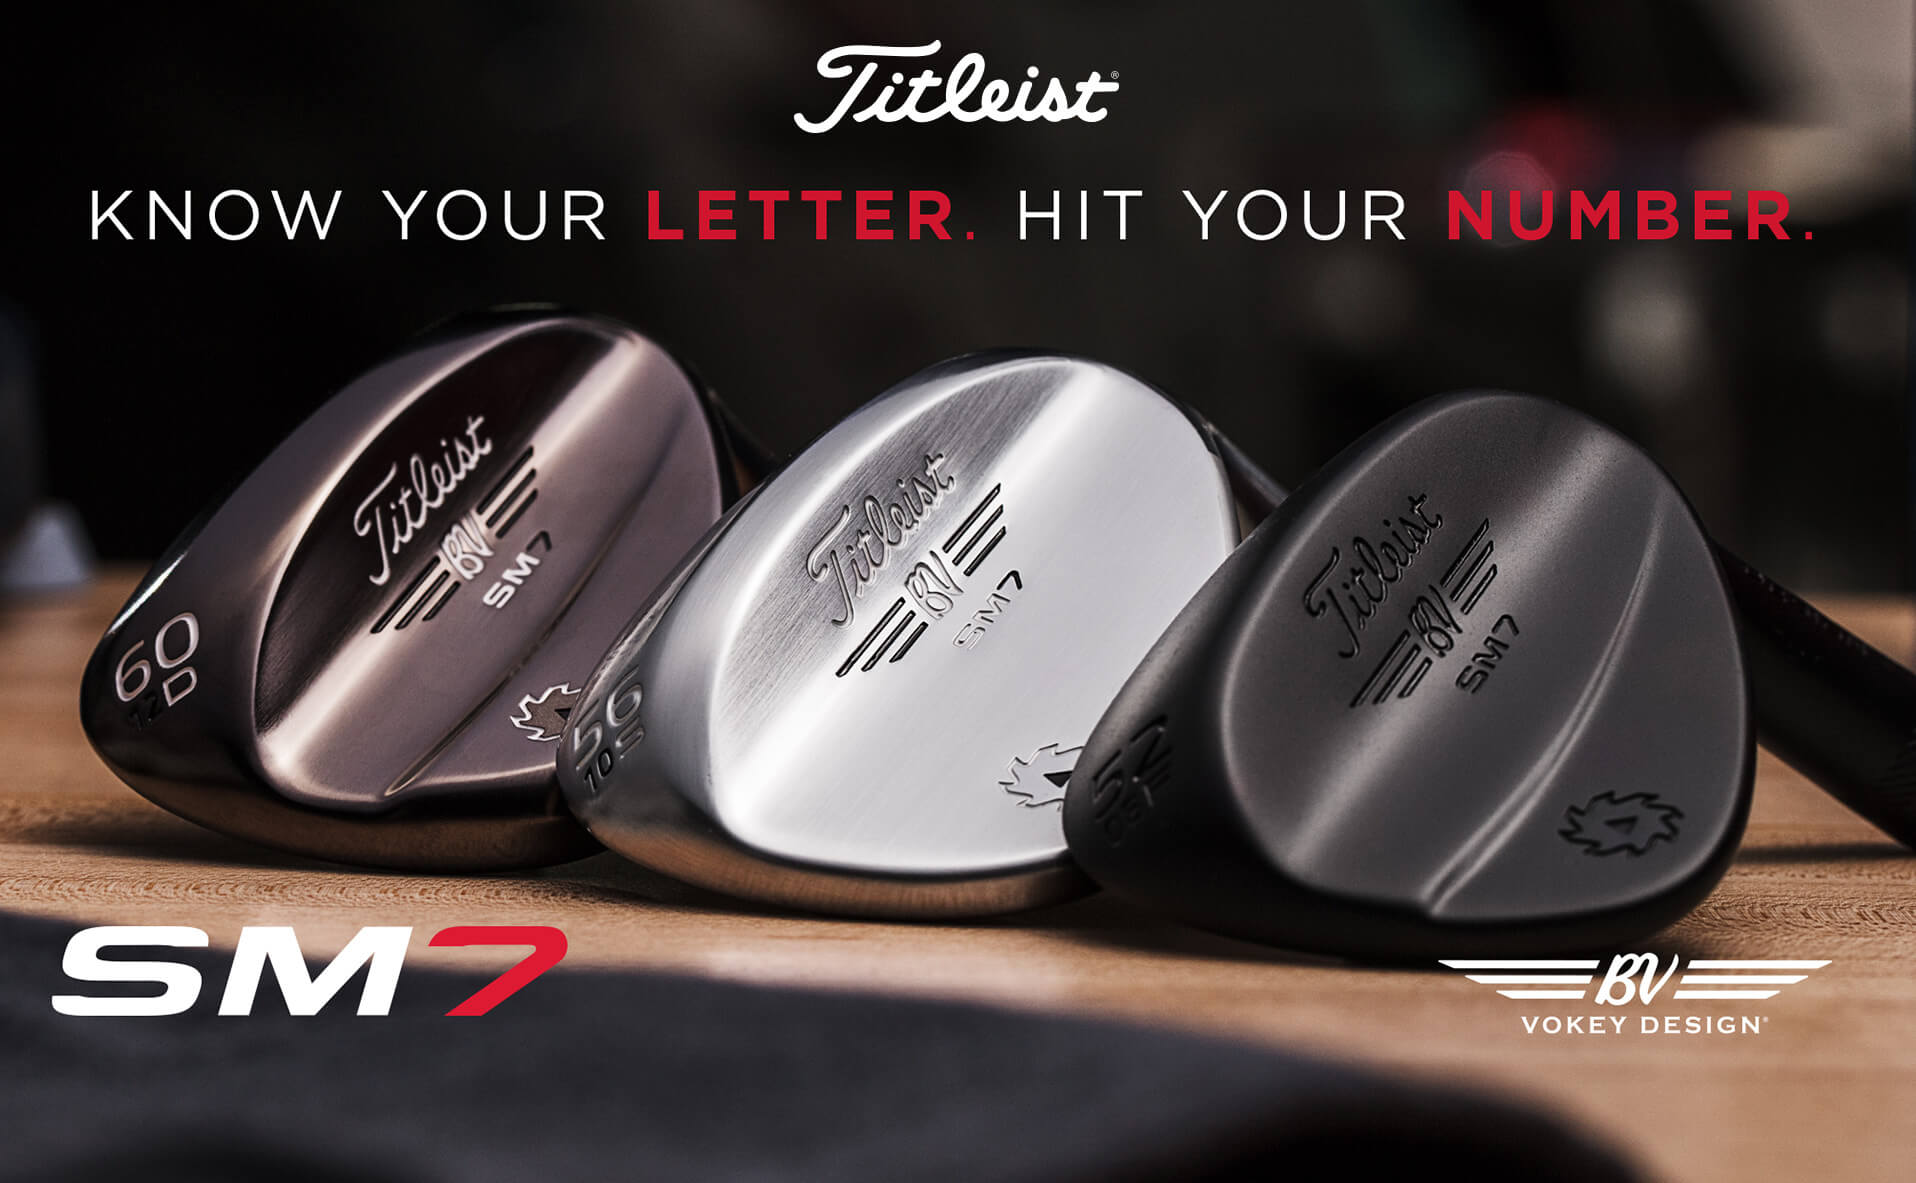 Titleist SM7 Vokey Design